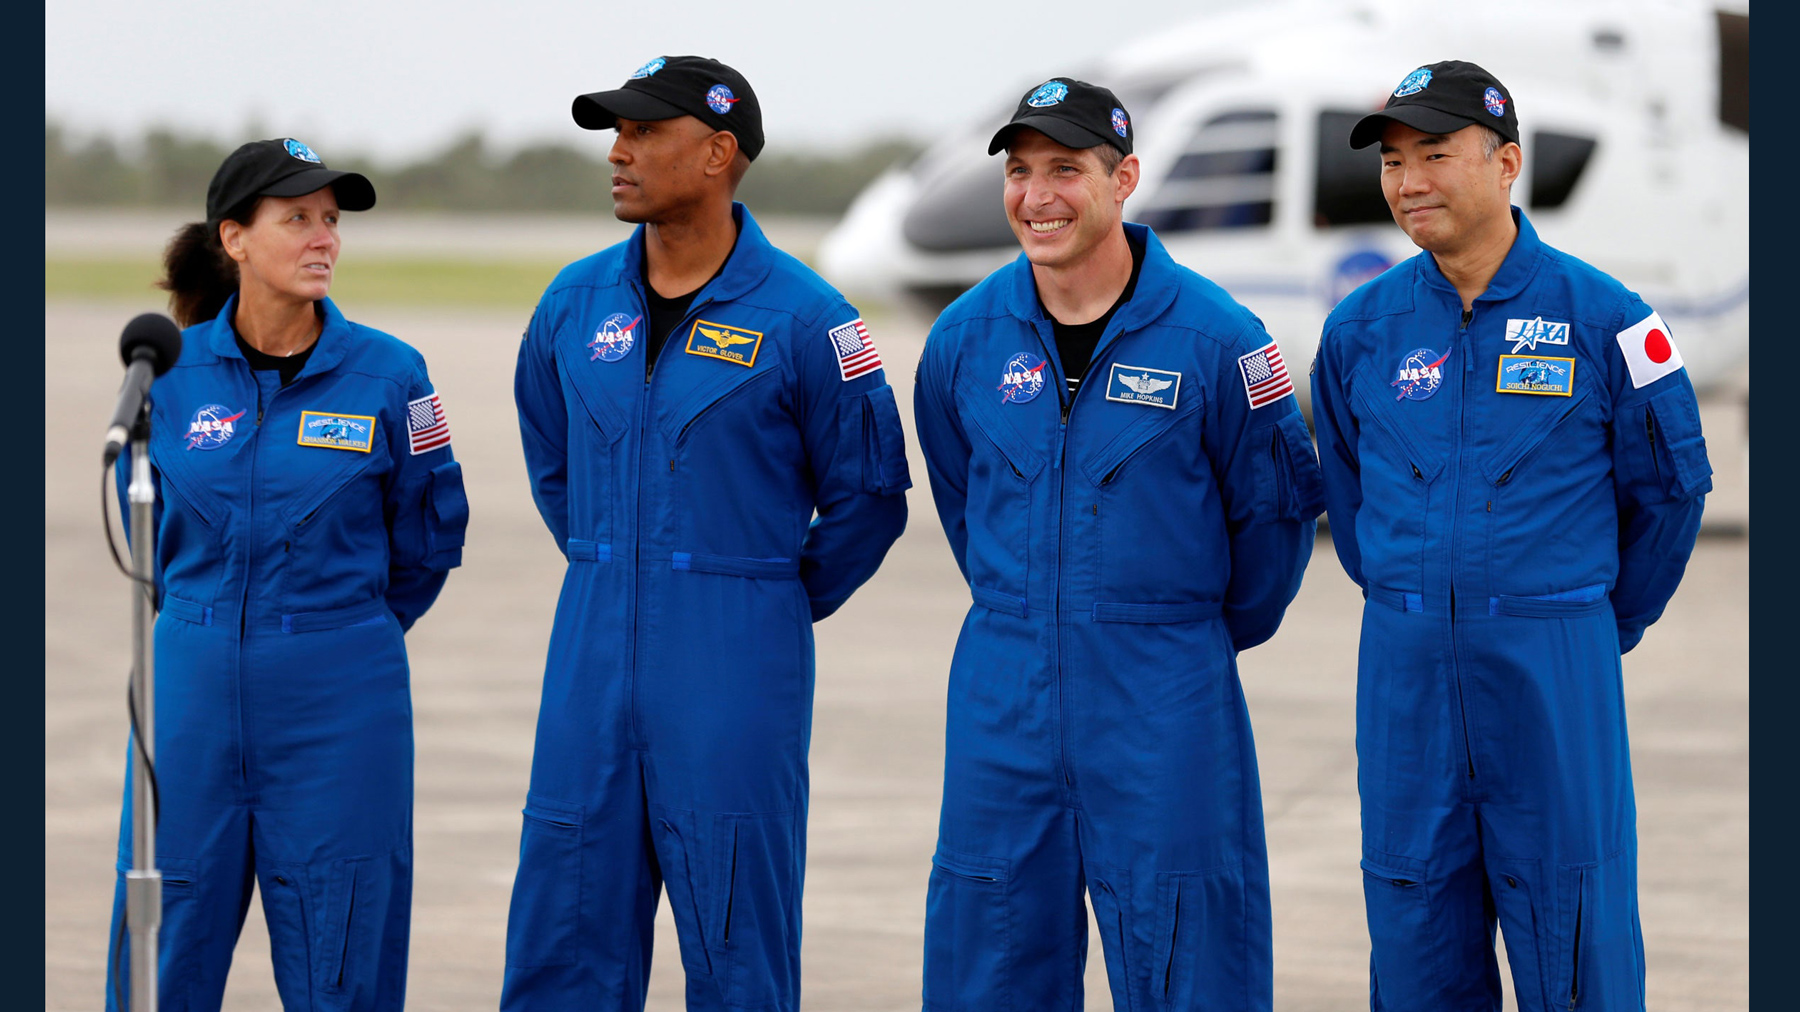 Alumnus Mike Hopkins is second from right in this image of the four crew members. JOE SKIPPER/REUTERS